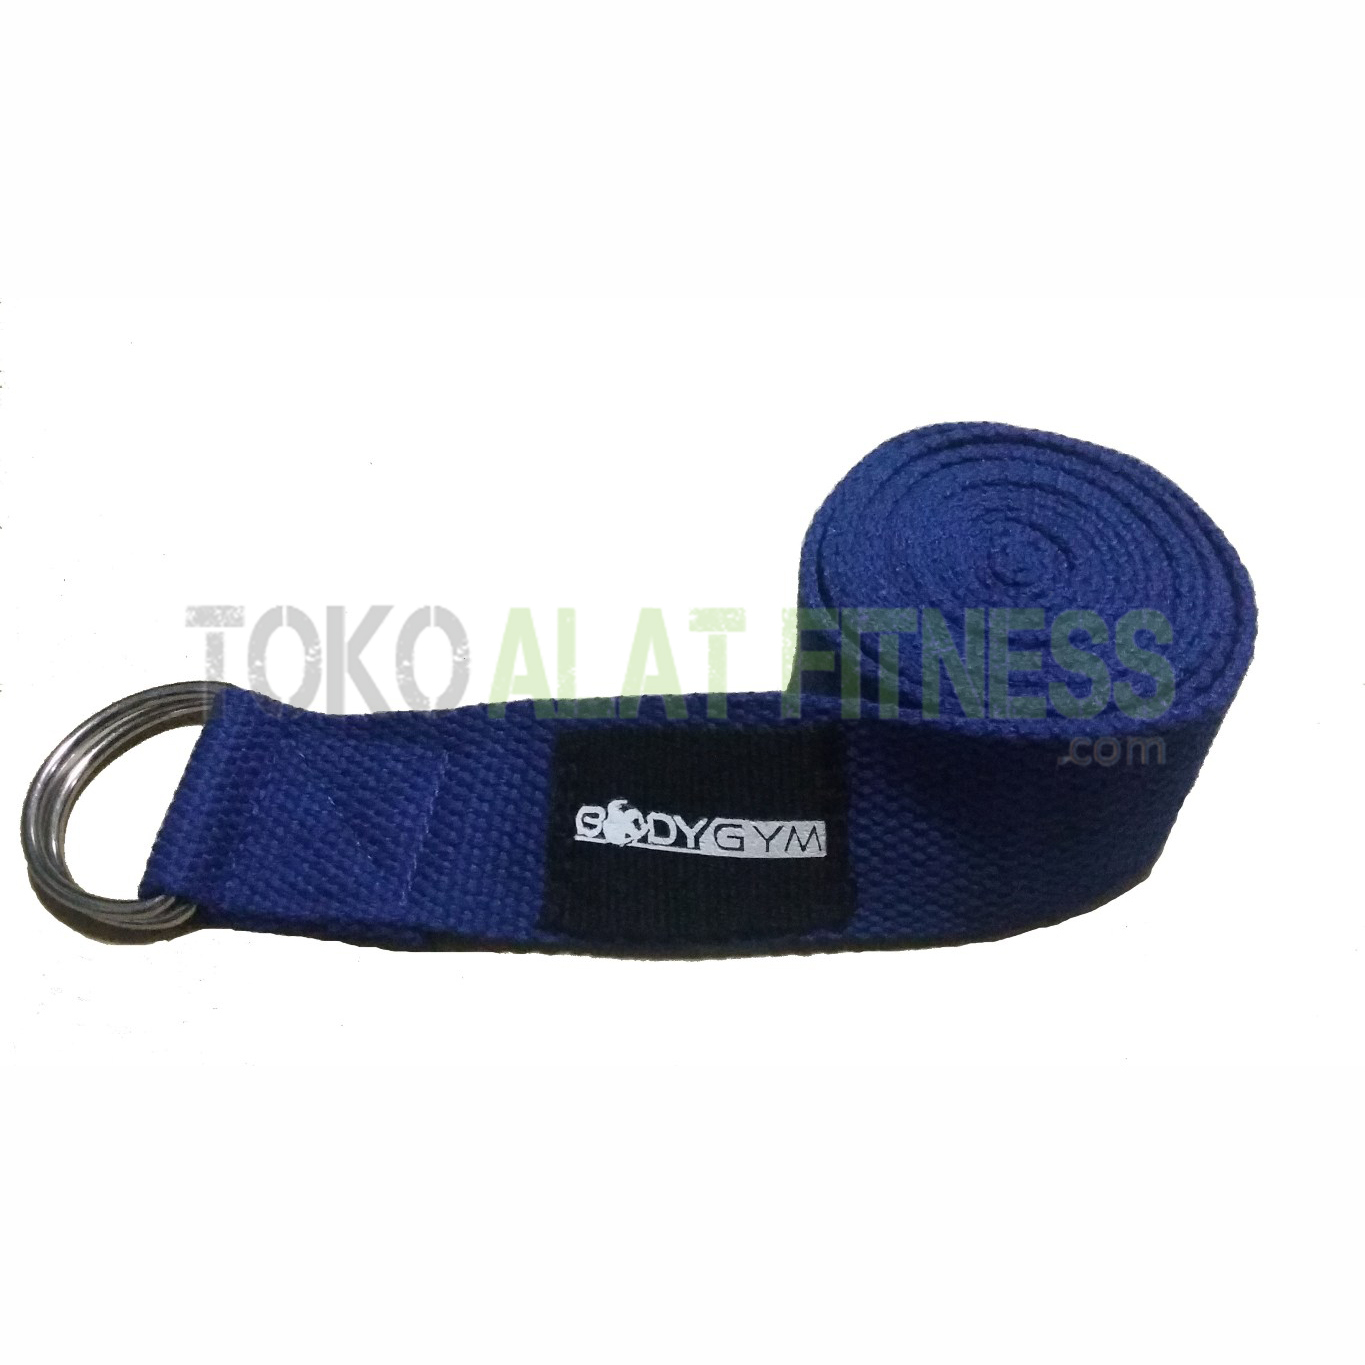 Body Gym Yoga Strap 3 wtm - Yoga Strap 3.8 x 180cm Blue Body Gym